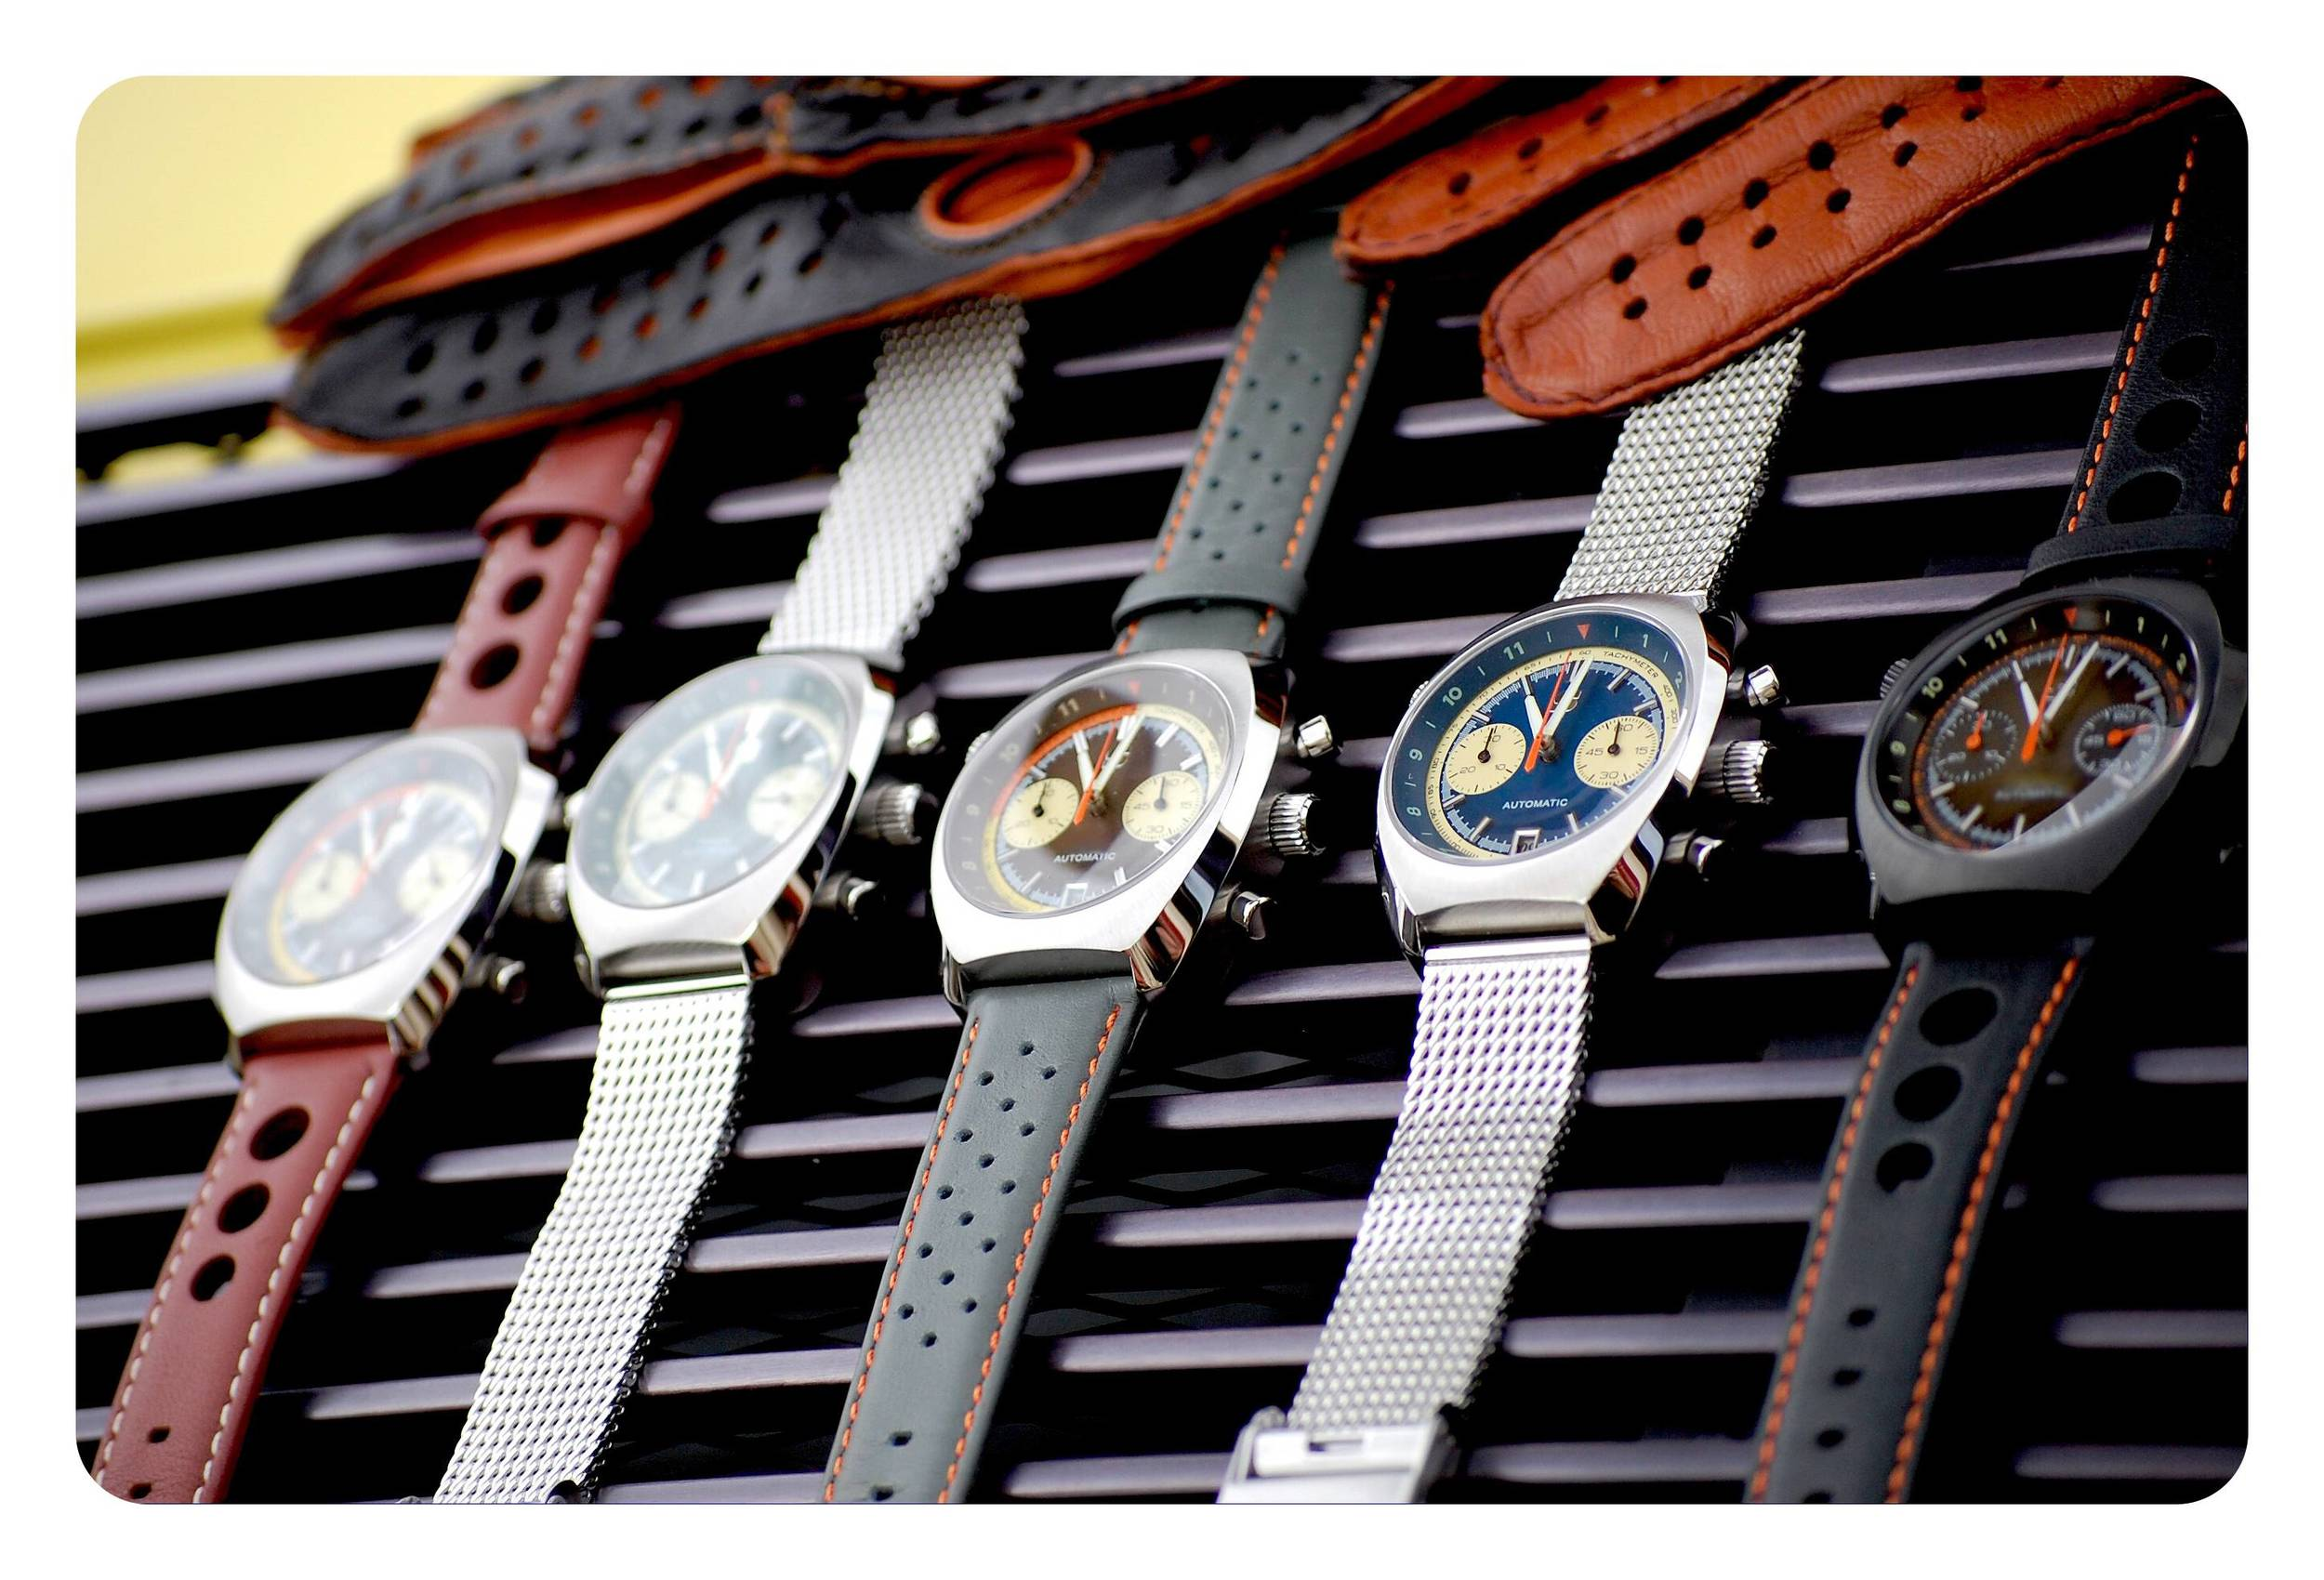 Straton Watch. Co.